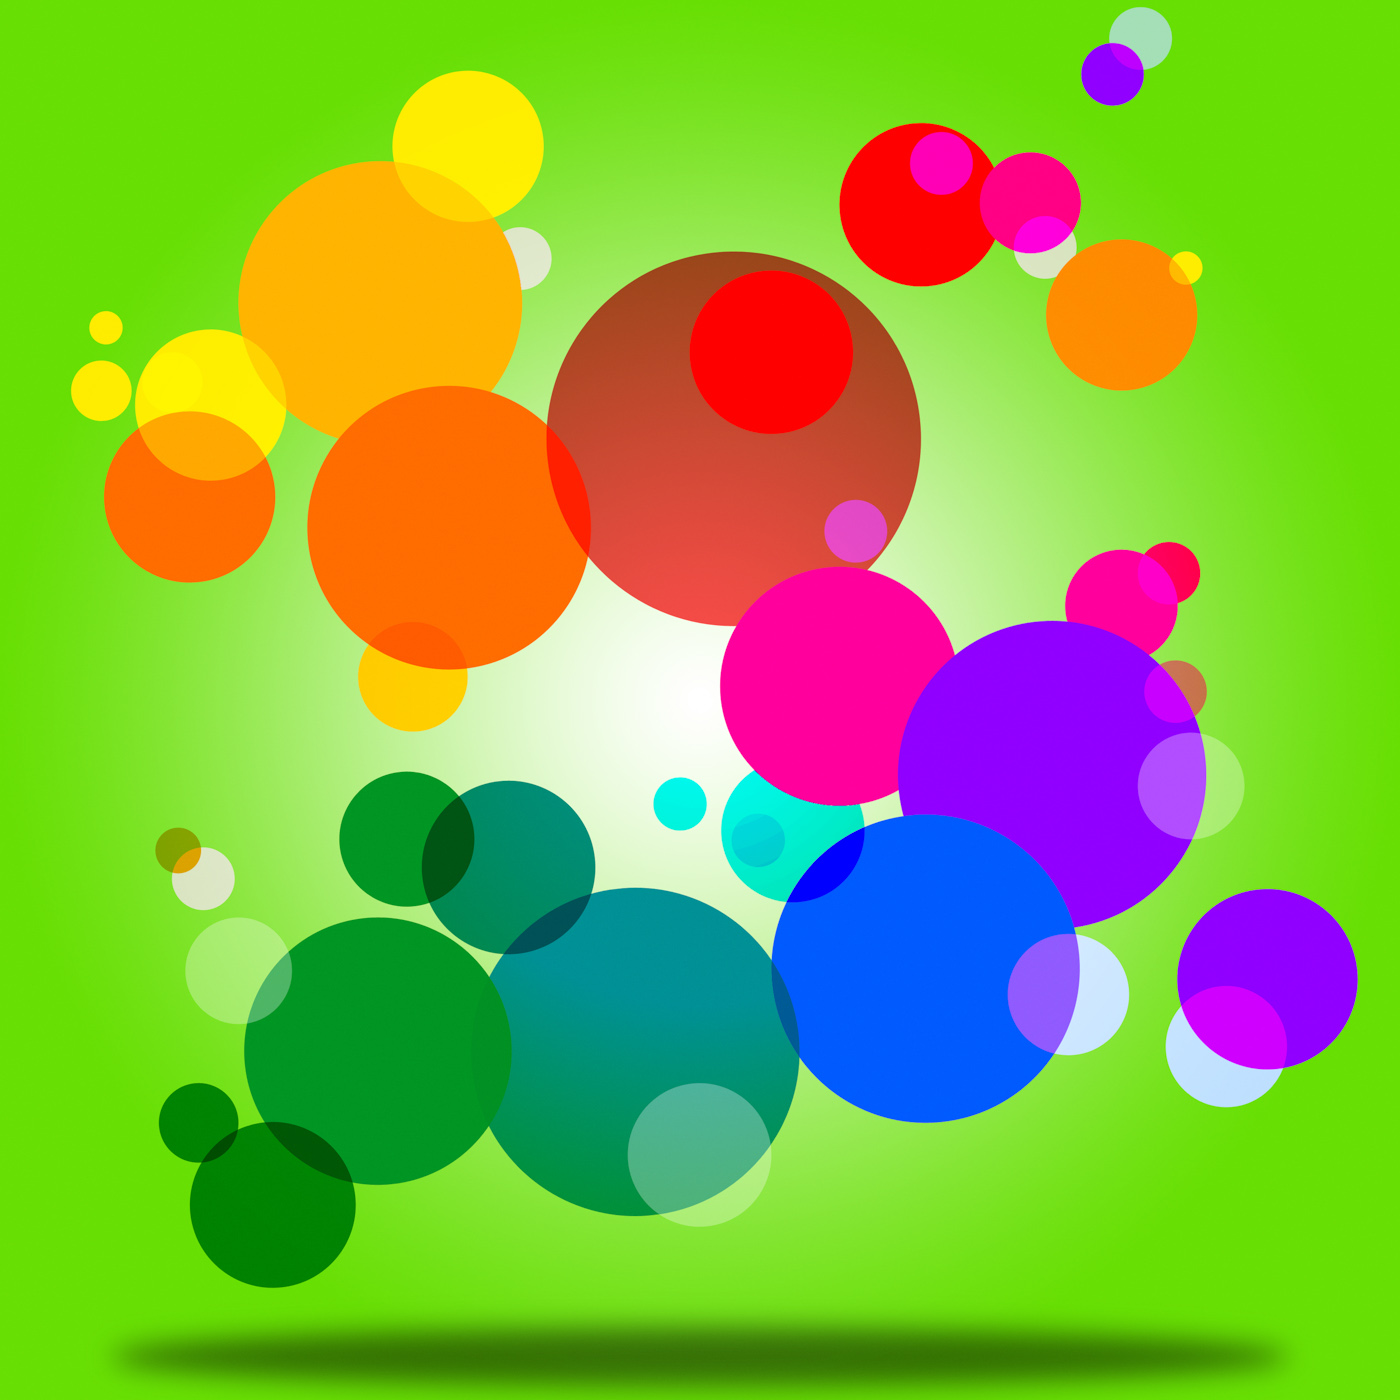 Color background indicates circles bubble and orb photo